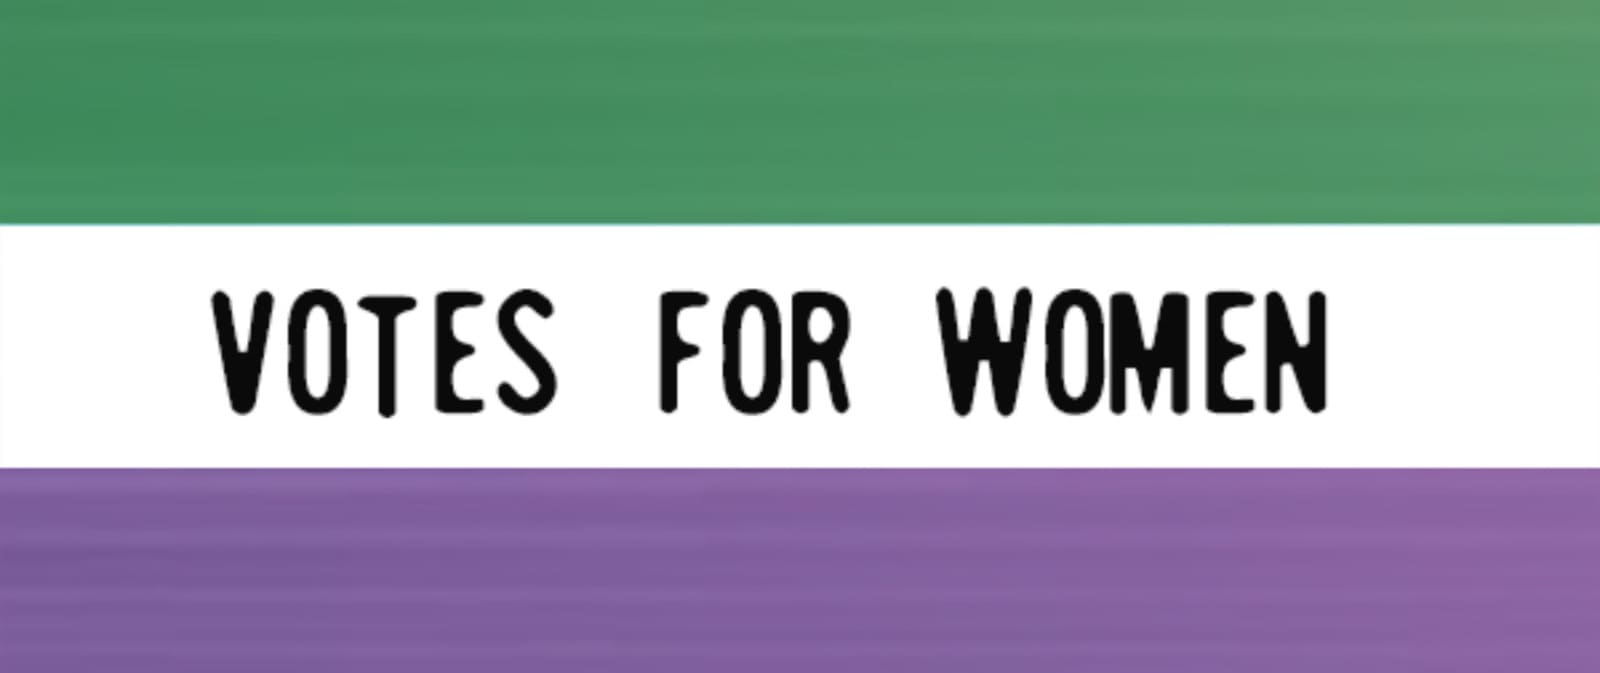 slogan des suffragettes votes for women